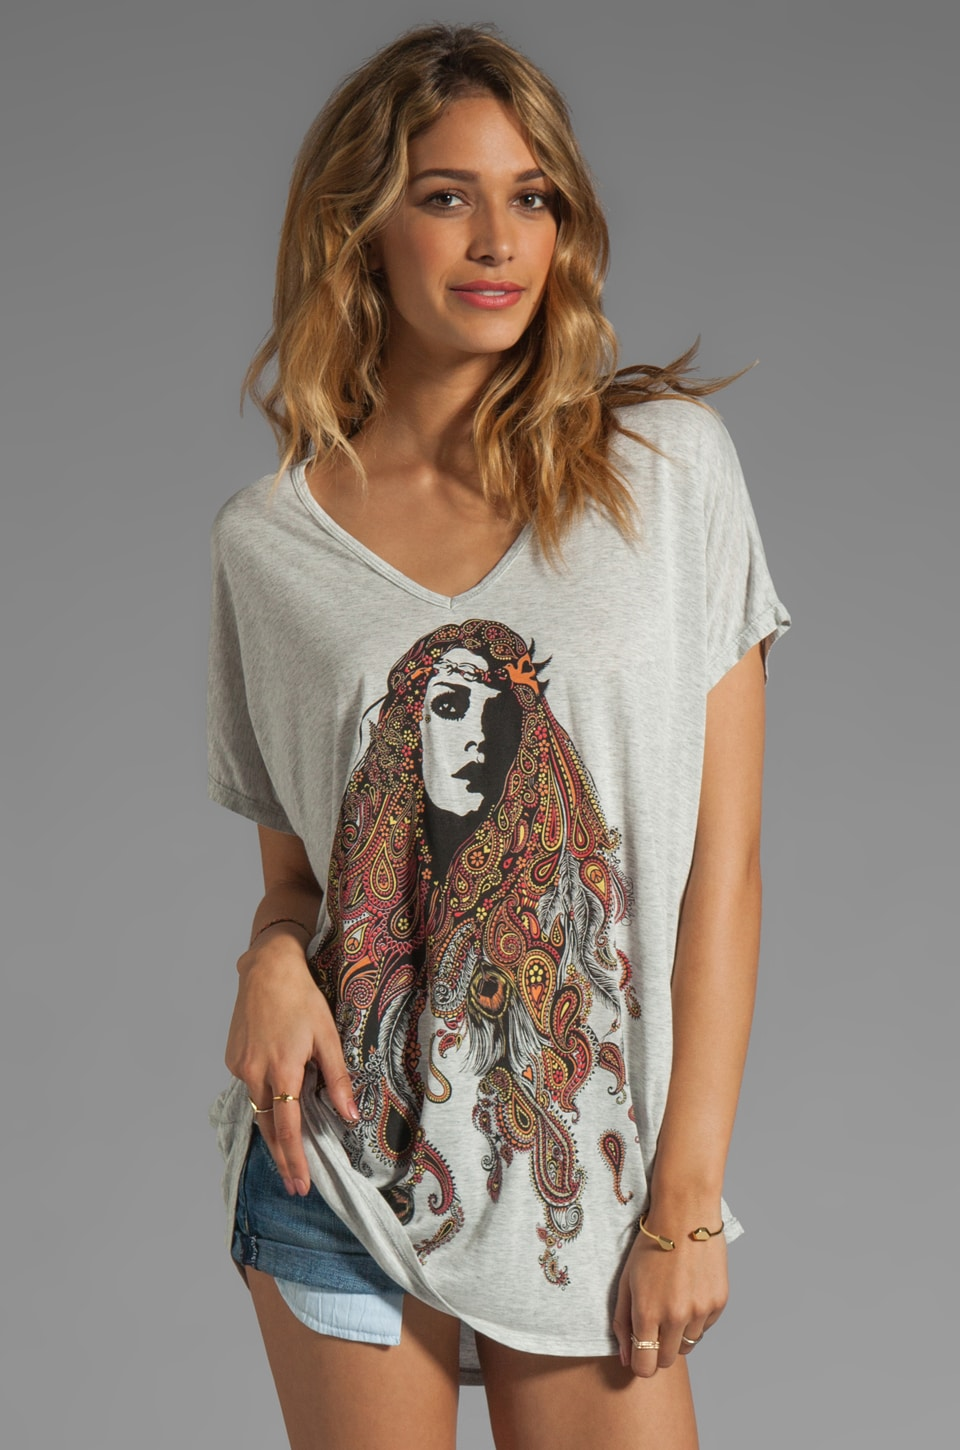 Lauren Moshi April Color Gypsy Girl Tee in Pearl